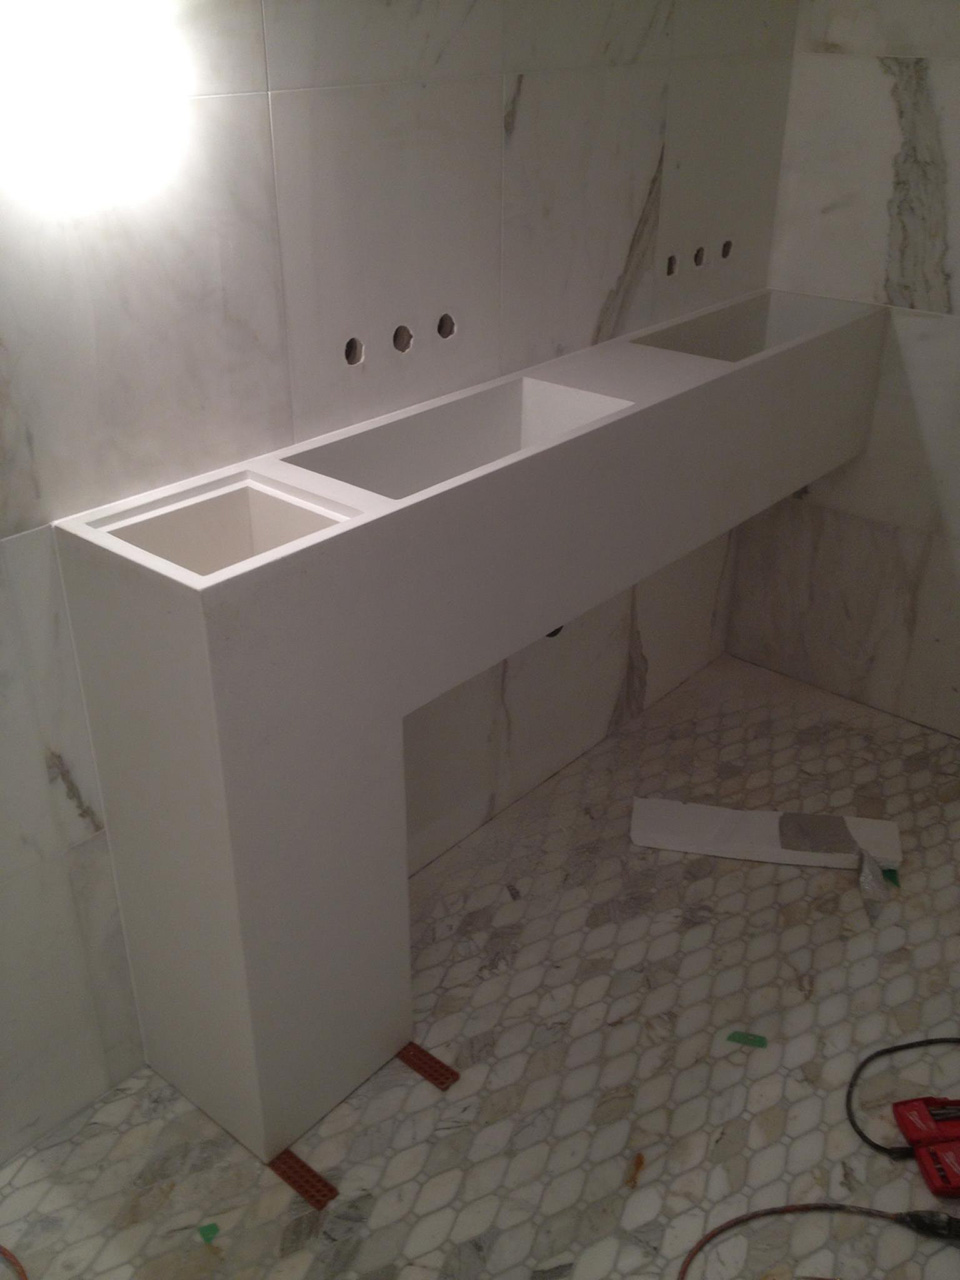 Custom sink for Patria restaurant in Toronto being installed